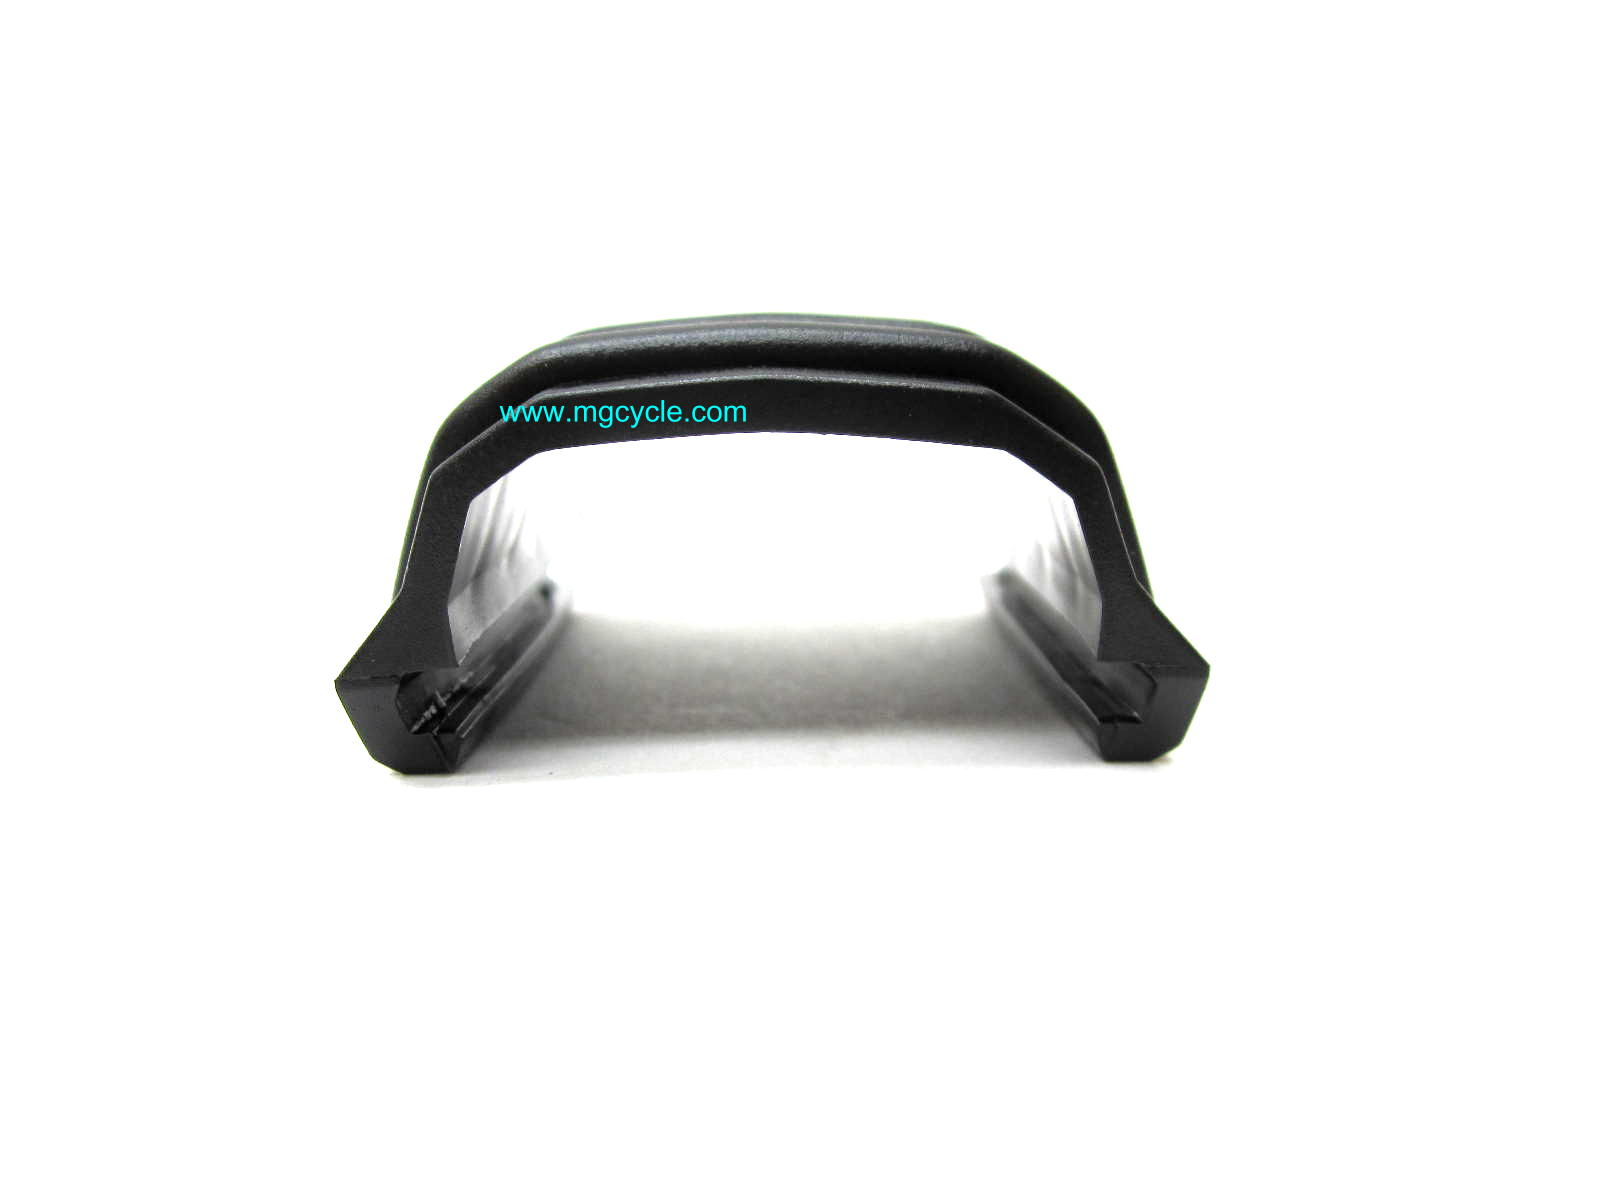 Brembo caliper cover for single nipple F08 calipers